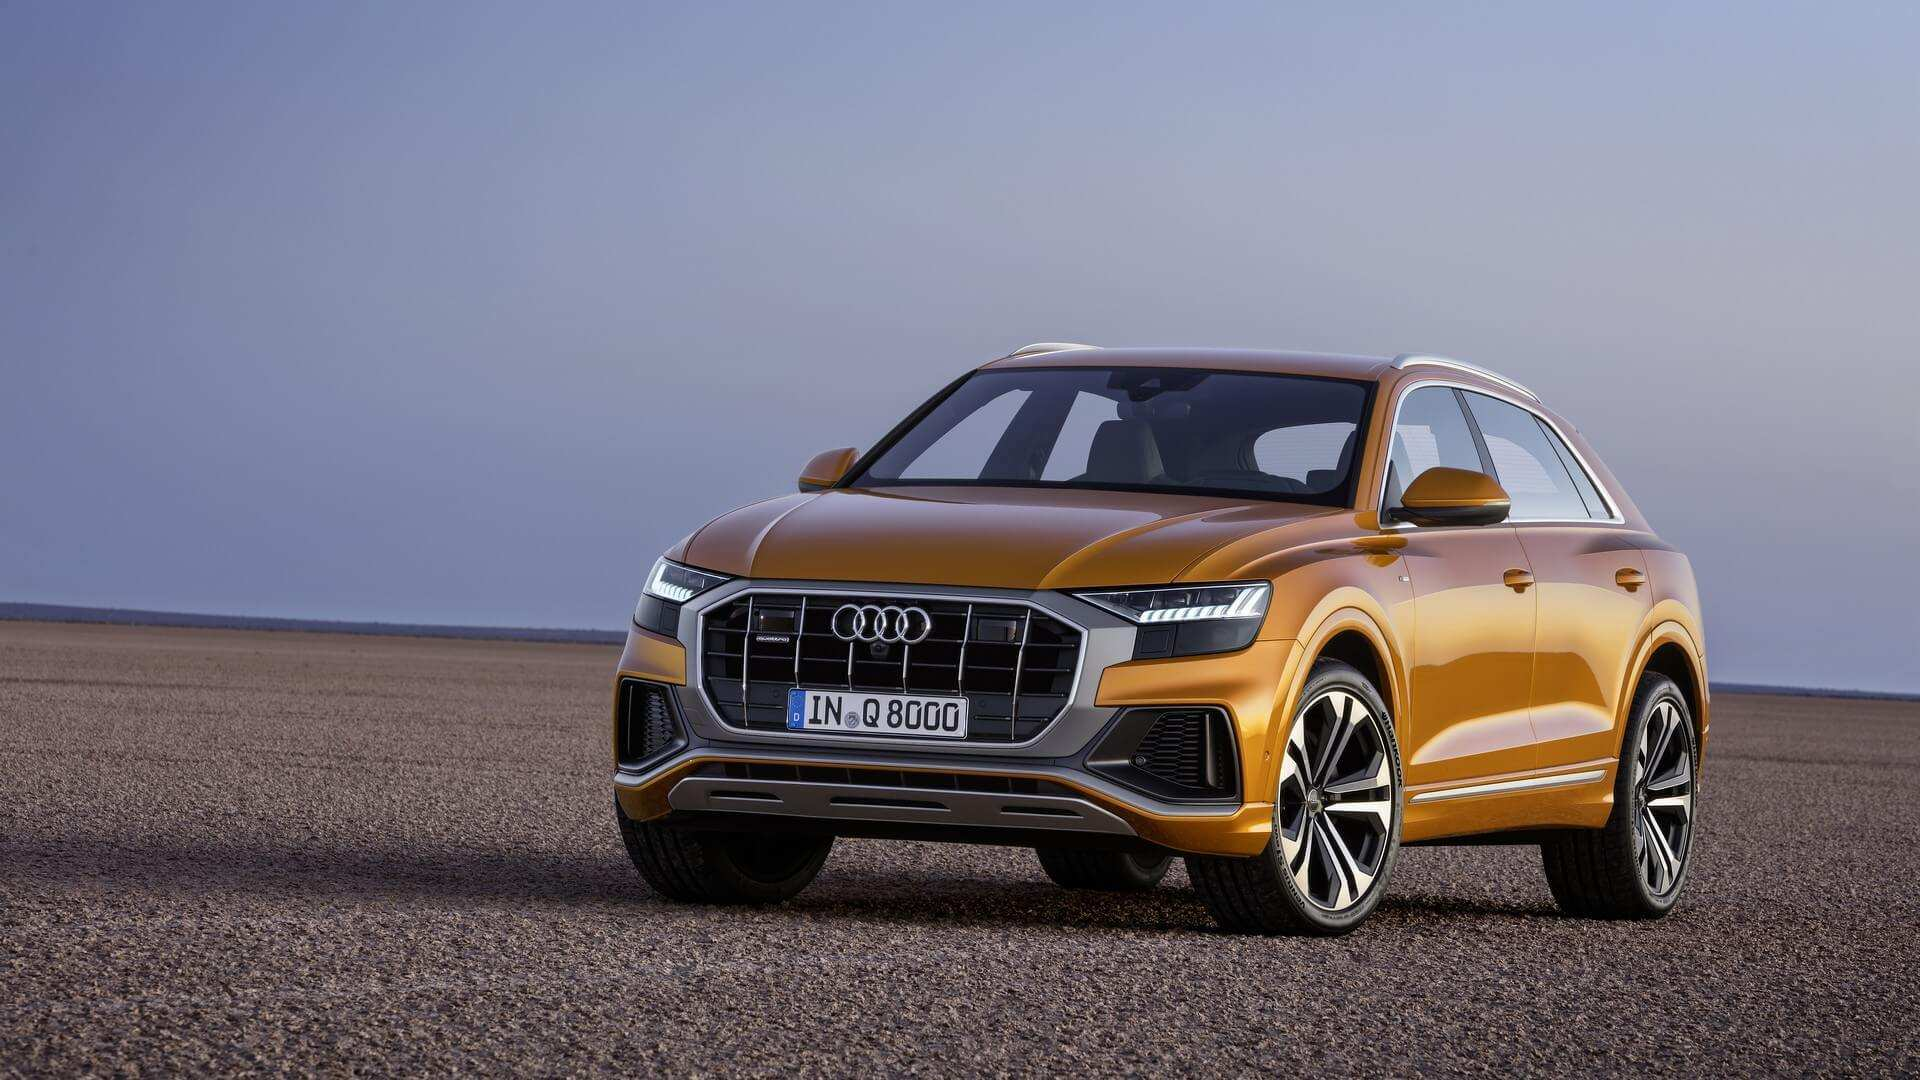 94 The Best 2019 Audi Q9 Redesign And Review